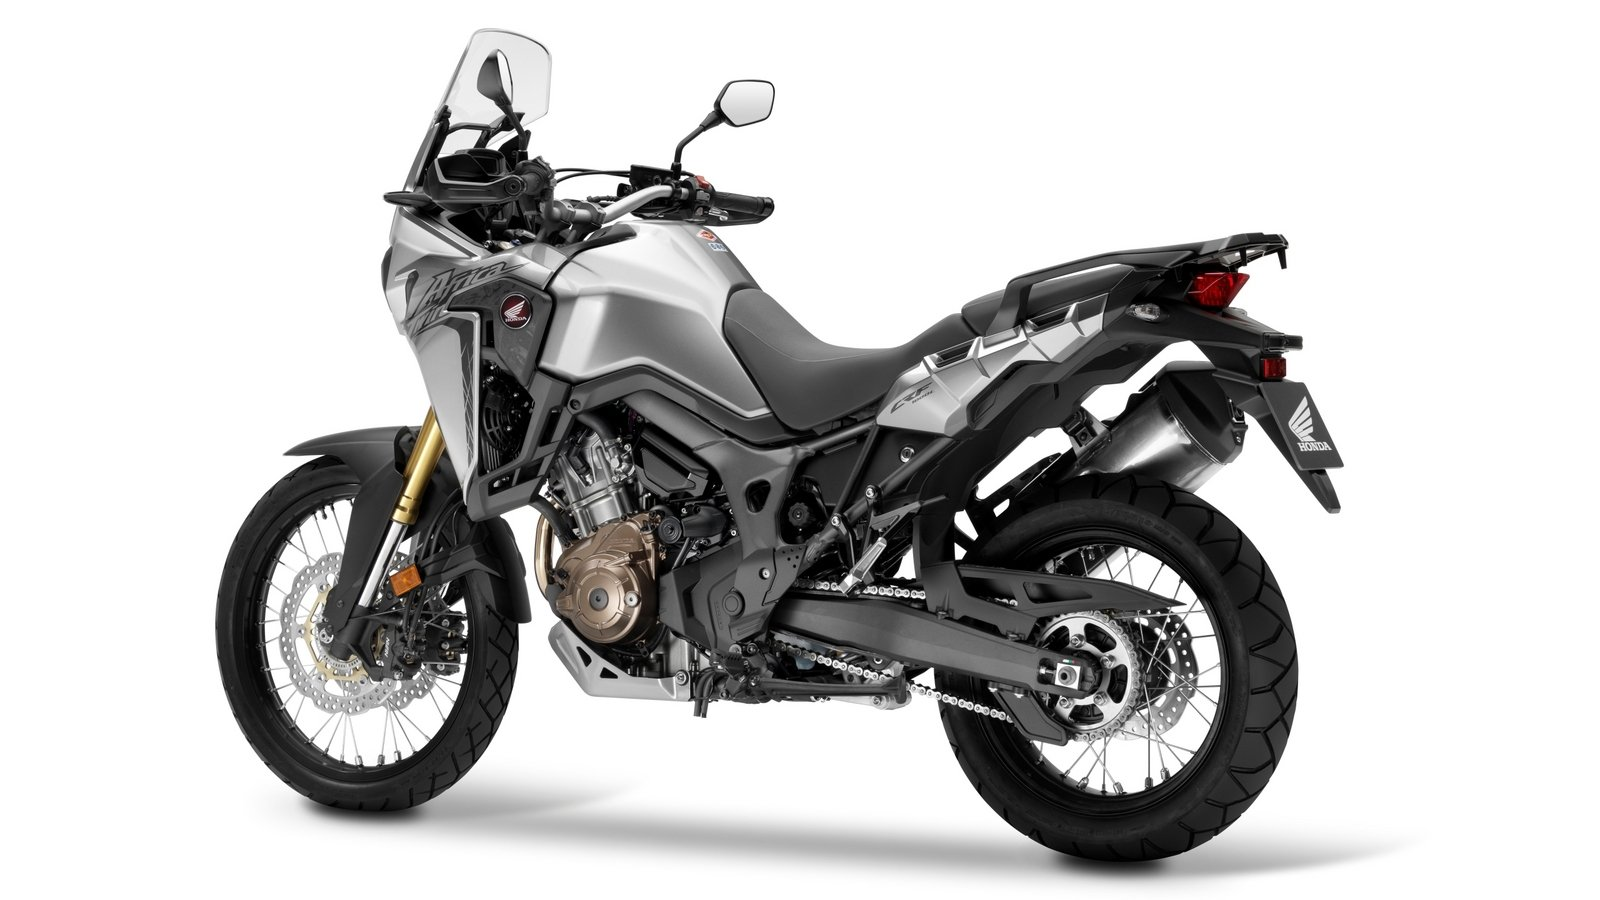 2016 honda crf1000l africa twin picture 654225 motorcycle review top speed. Black Bedroom Furniture Sets. Home Design Ideas